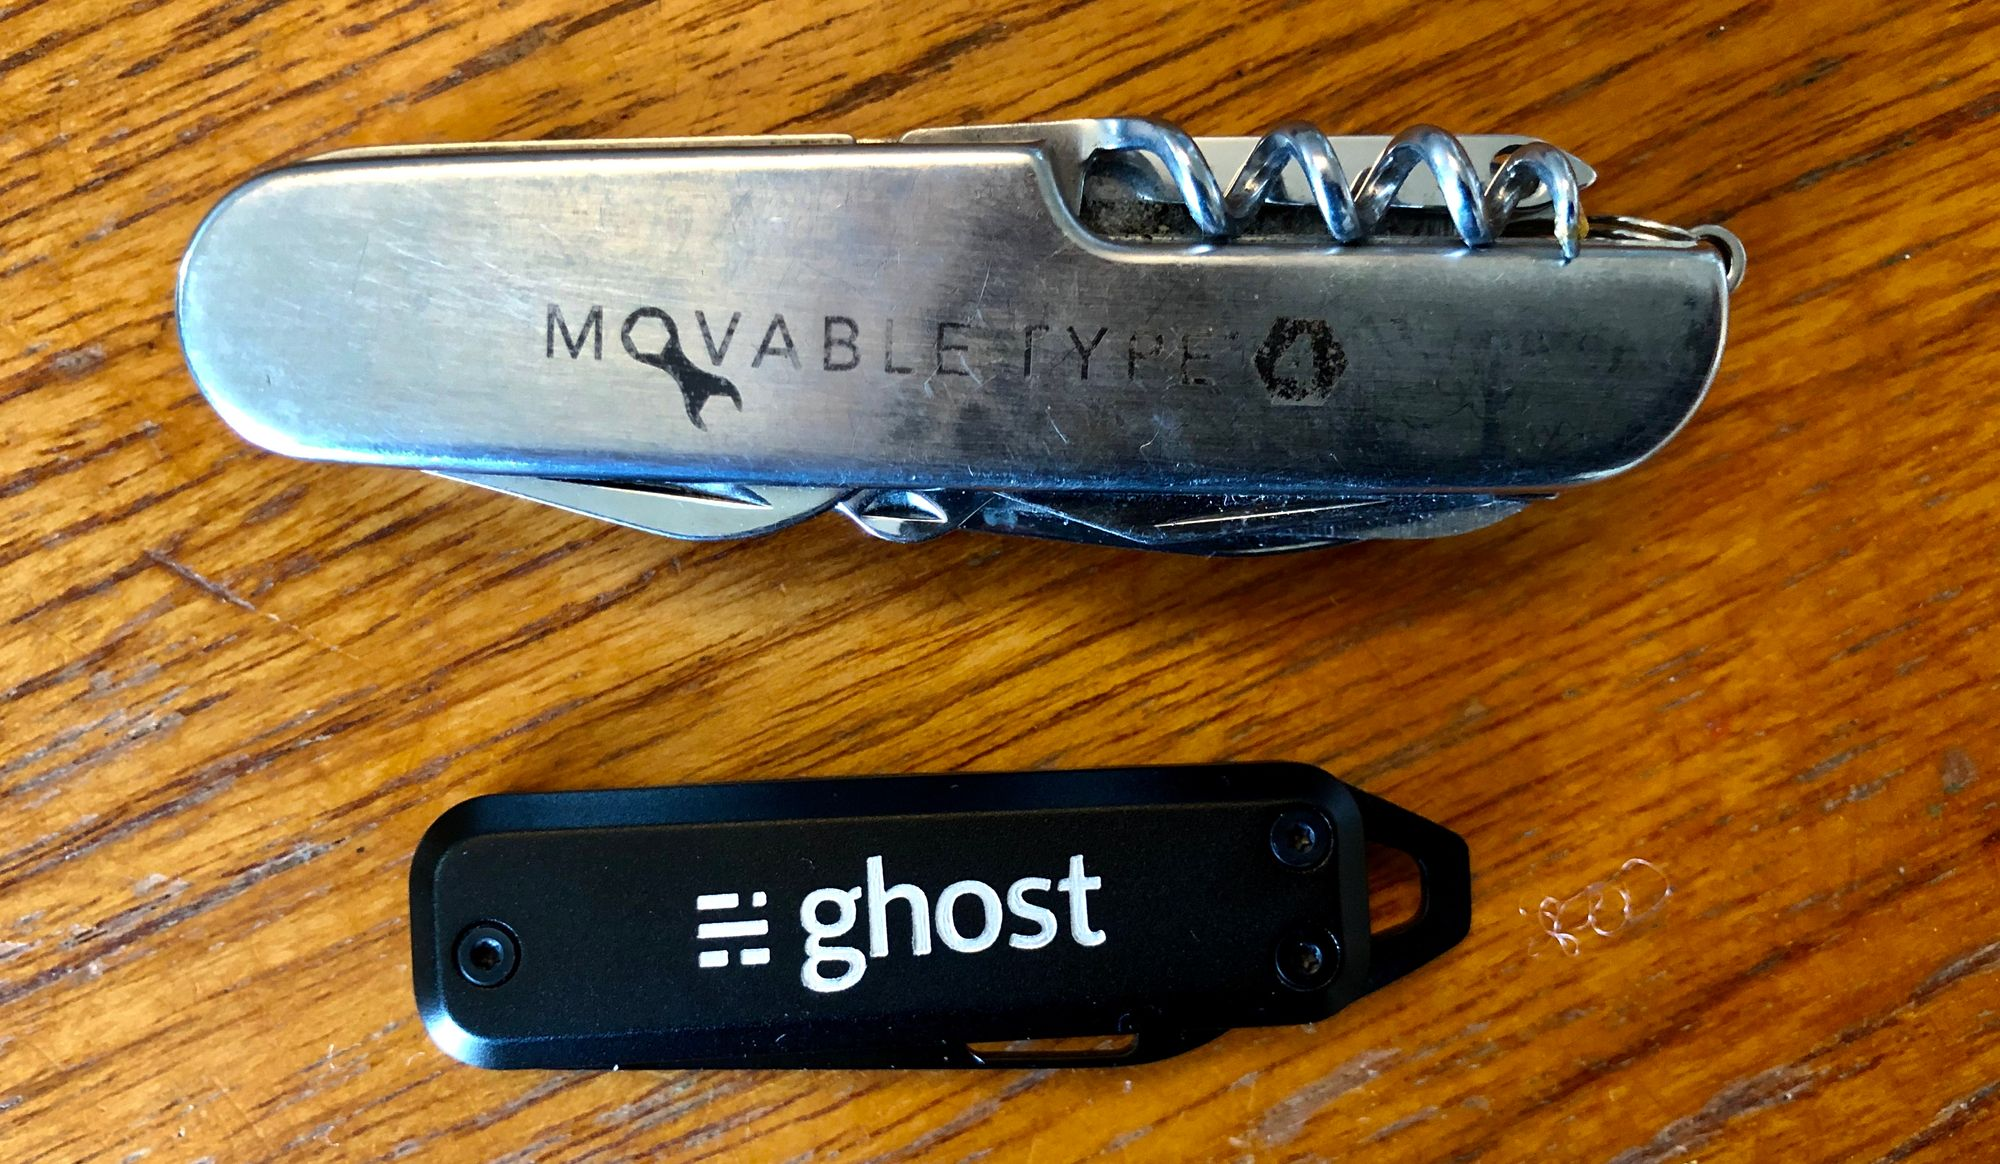 A Movable Type penknife above a Ghost penknife.